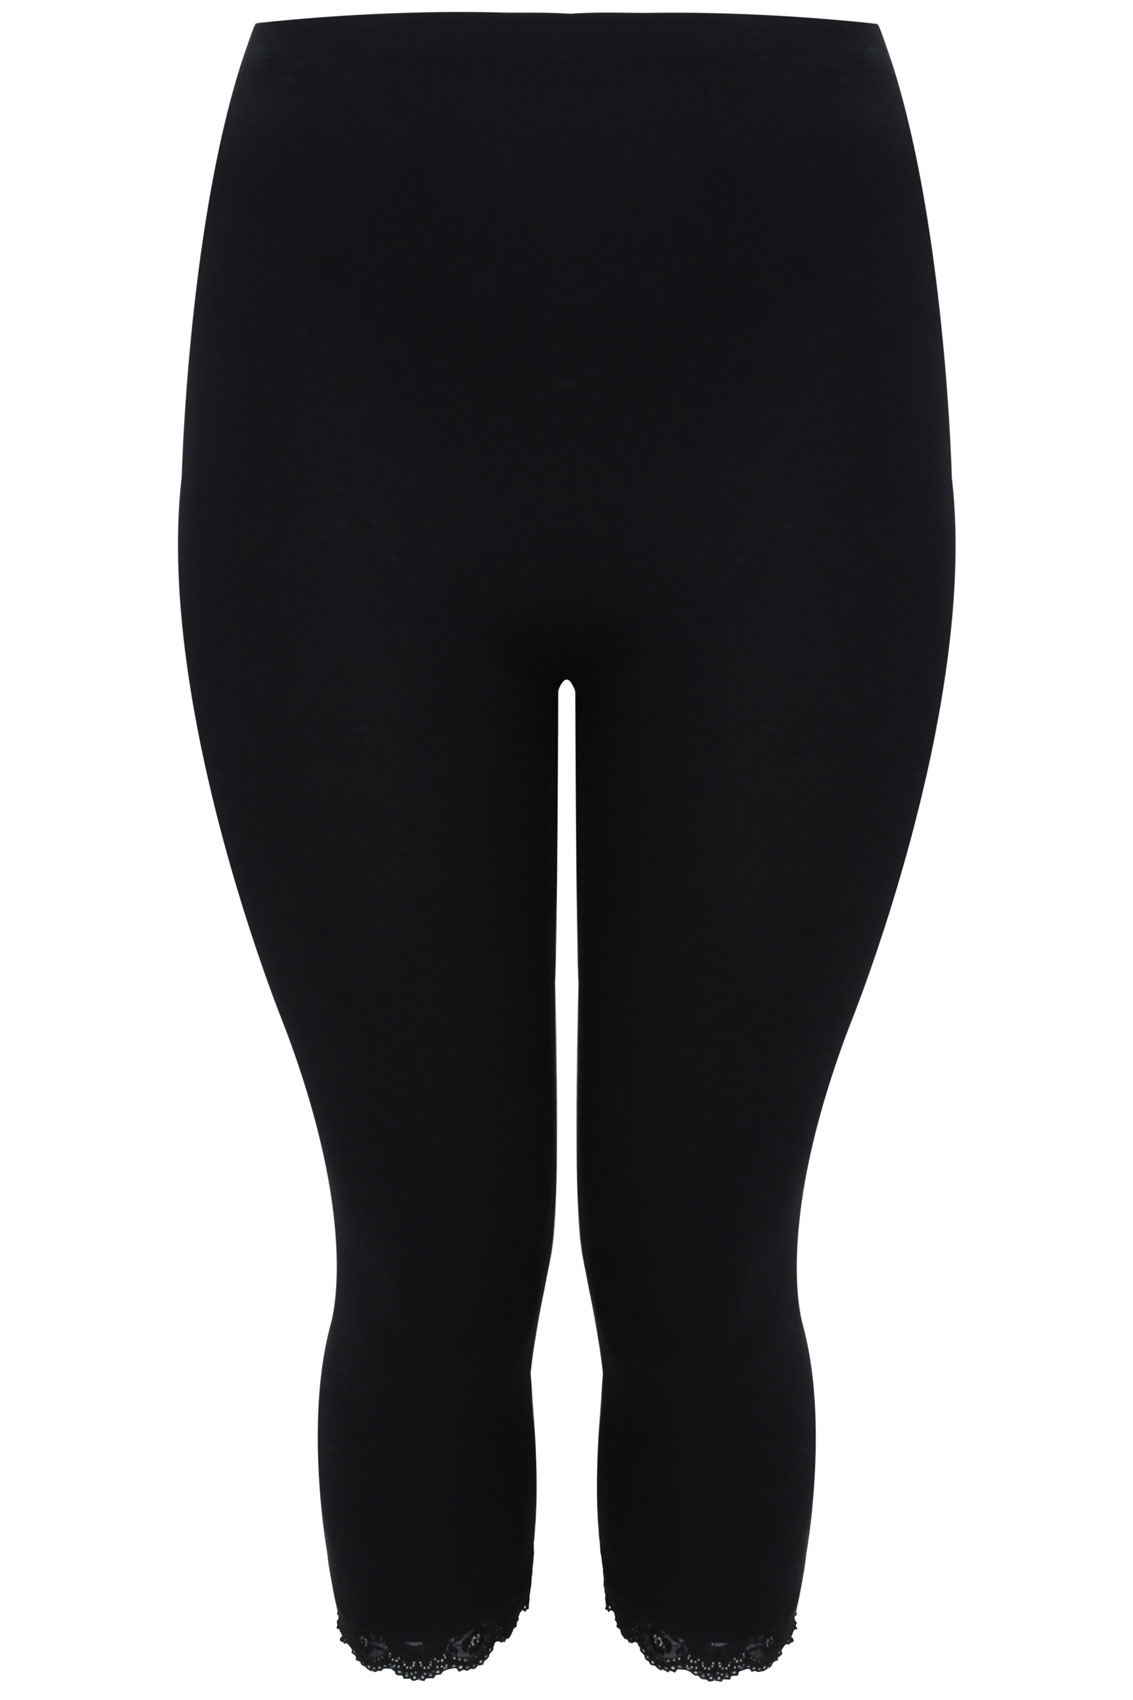 Black Cotton Essential Crop Legging With Lace Trim Plus -8245